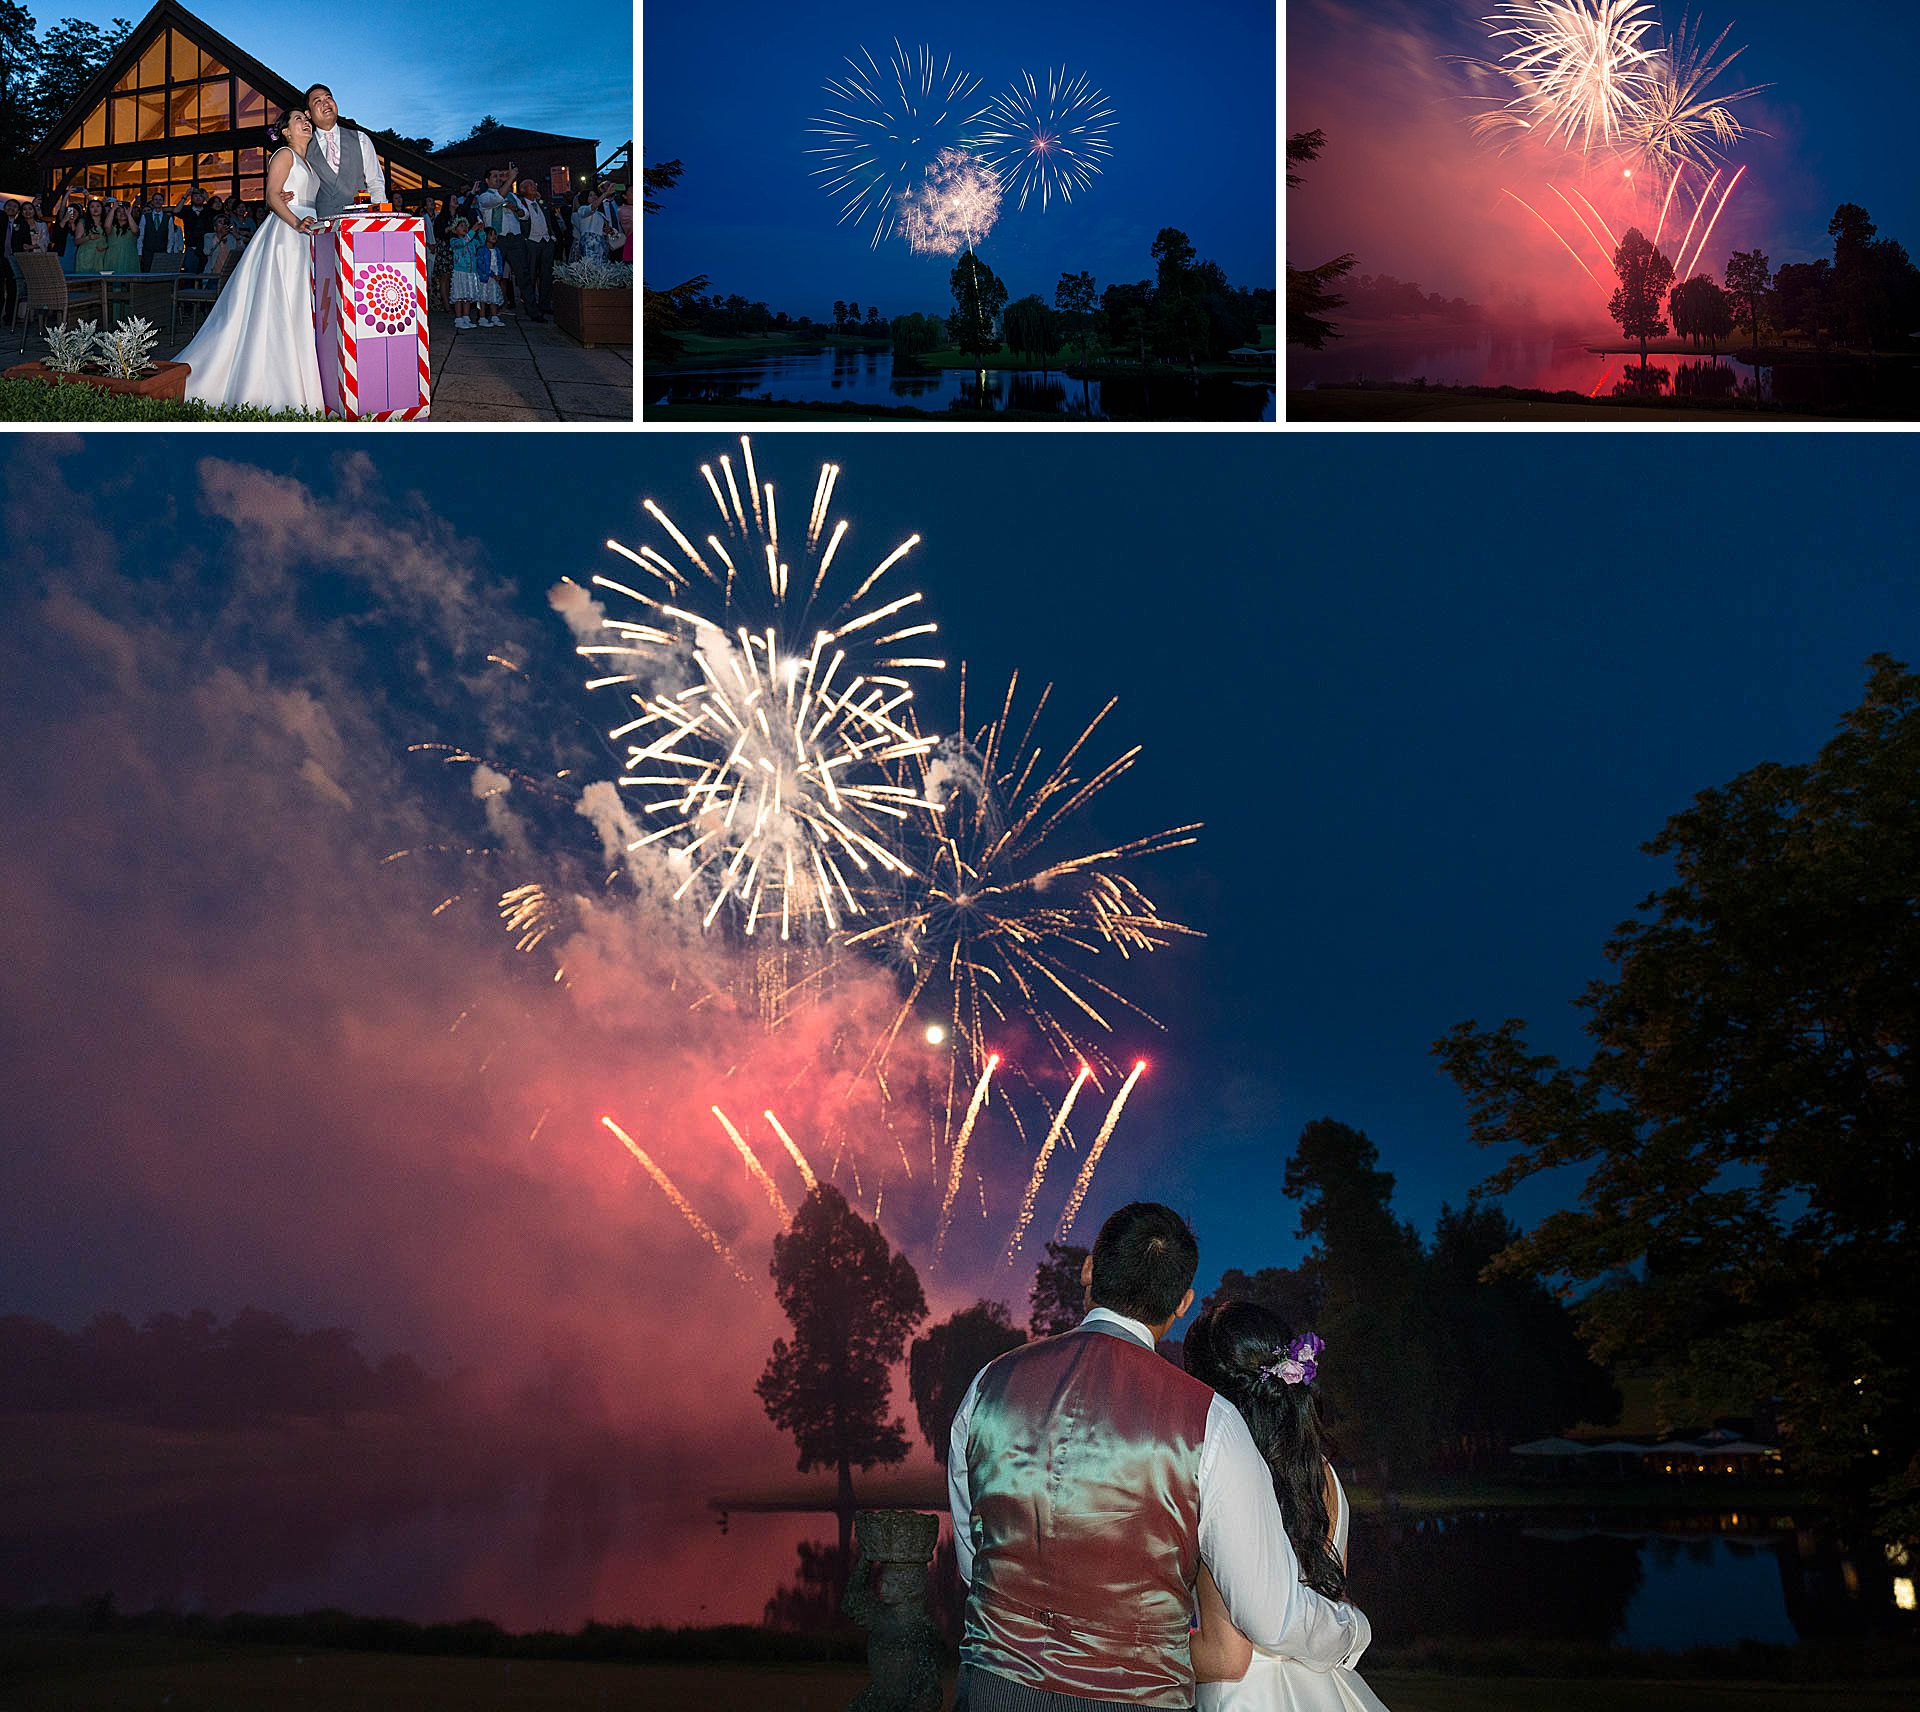 Wedding fireworks at Brocket Hall